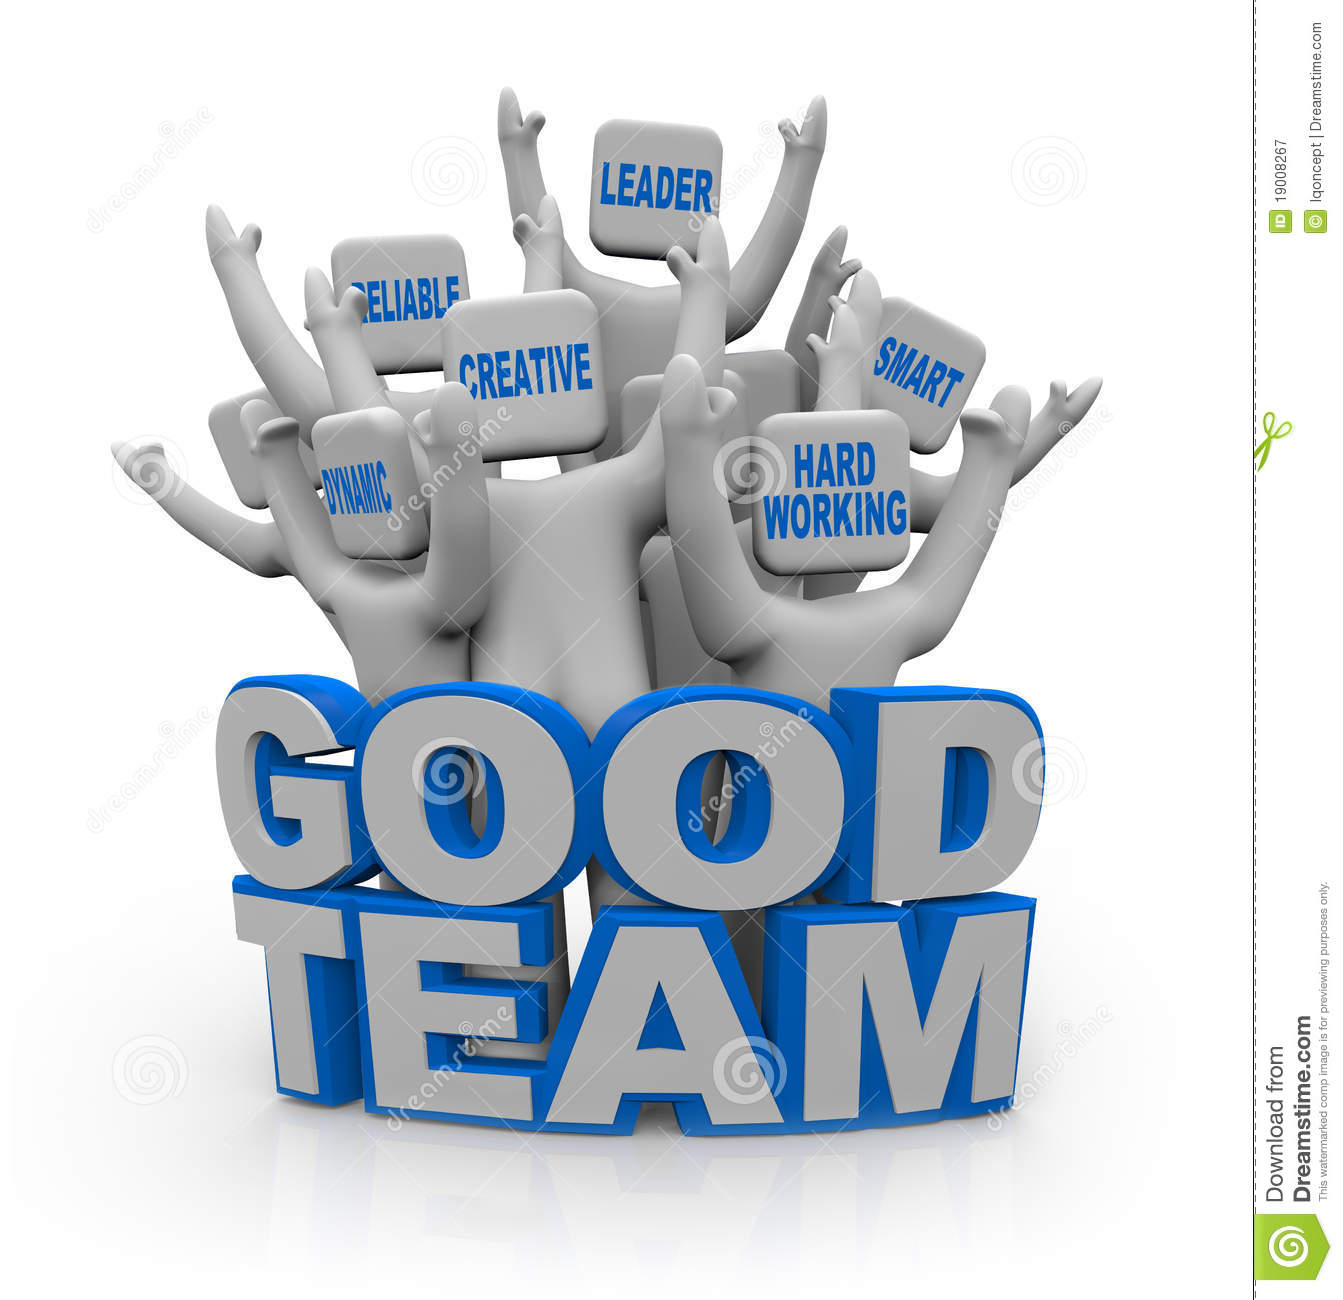 beneficial of team work The majority of research in stem fields is conducted through collaborations and  working groups, where a diversity of ideas need to be proposed and analyzed.